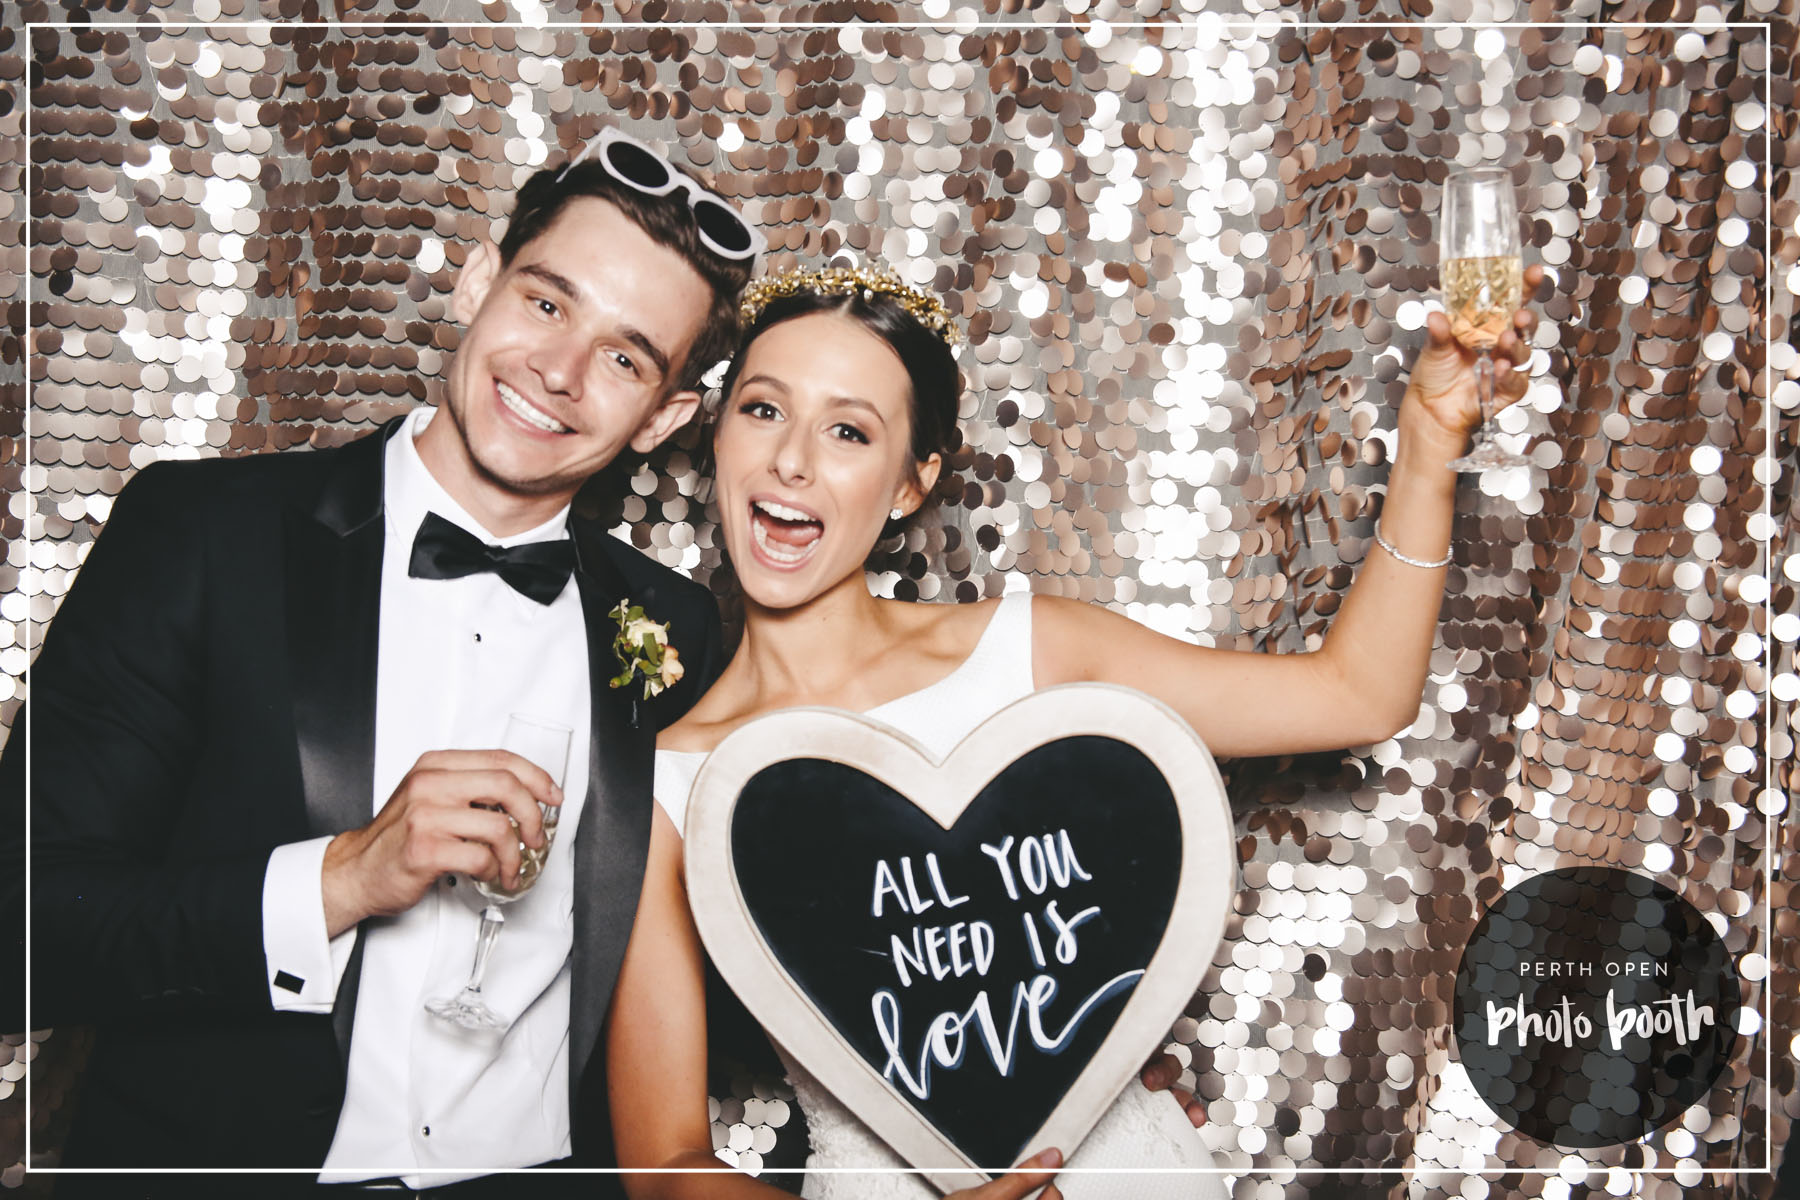 ANDREW & ELISE'S WEDDING - Password provided on the night- All lowercase -